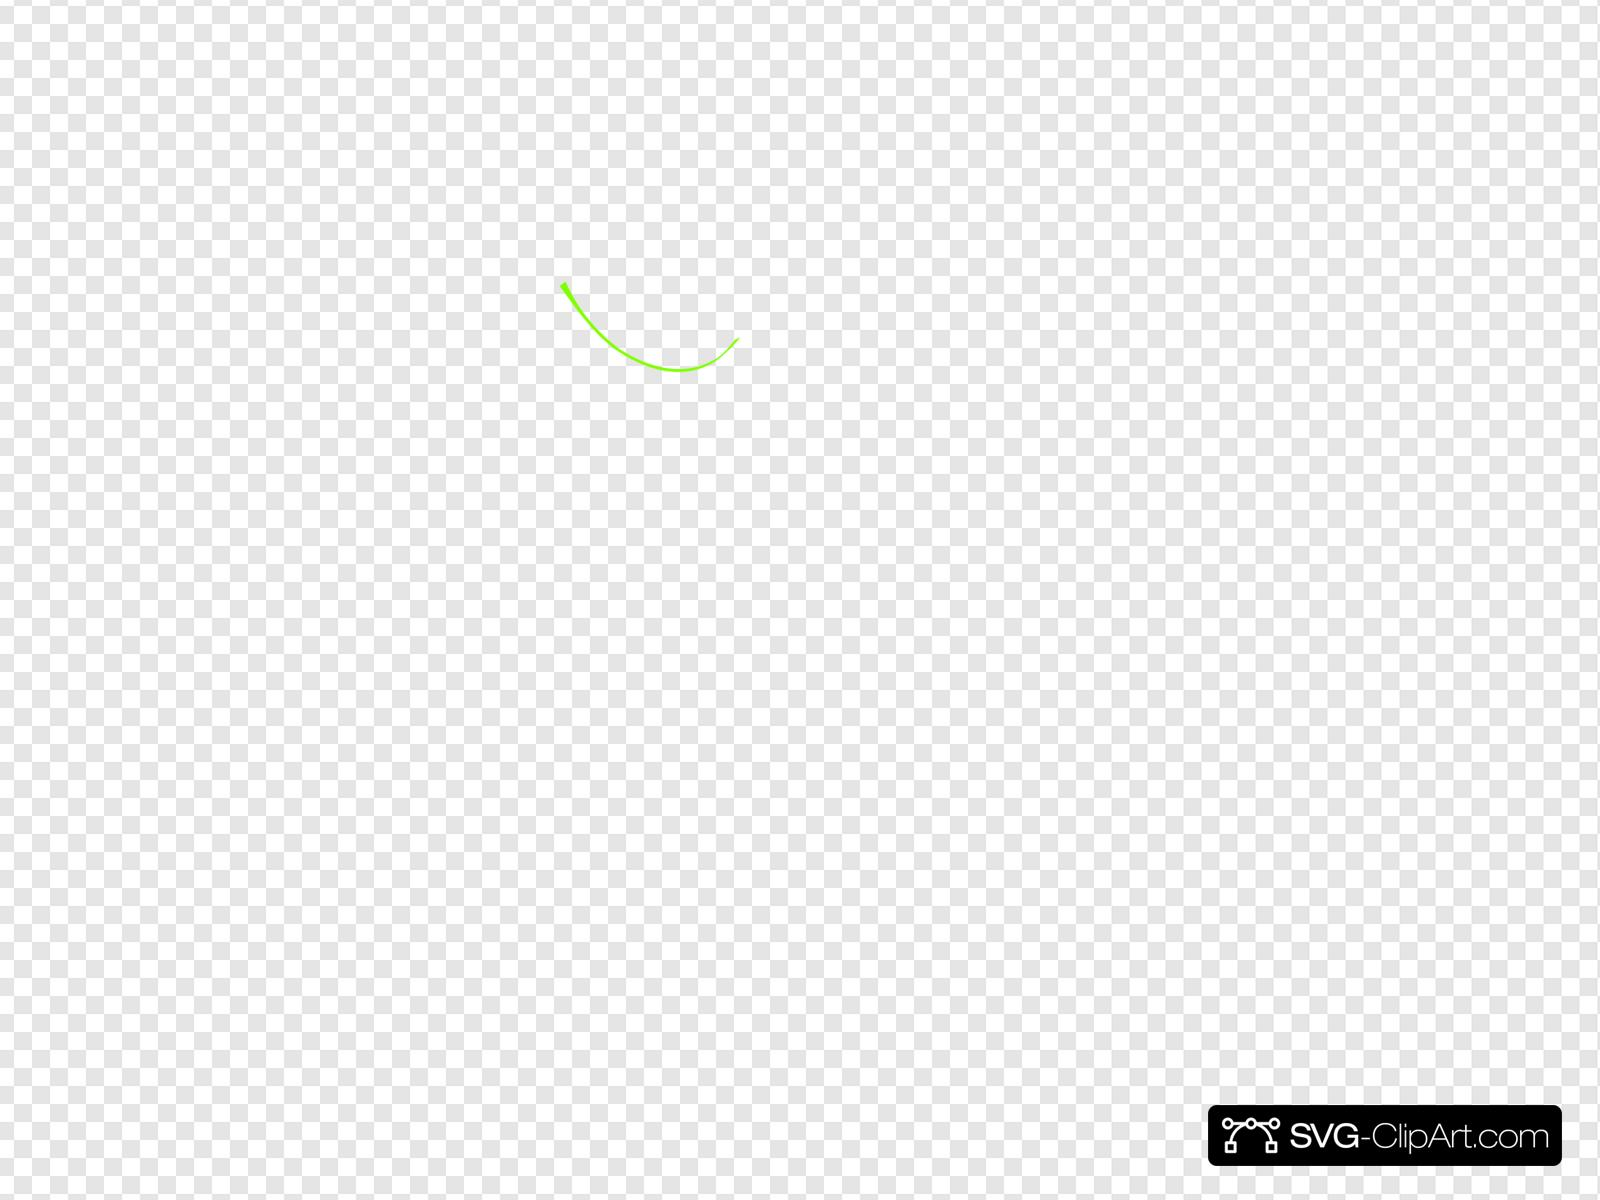 Swirl light clipart svg black and white Green Swirl Light Clip art, Icon and SVG - SVG Clipart svg black and white